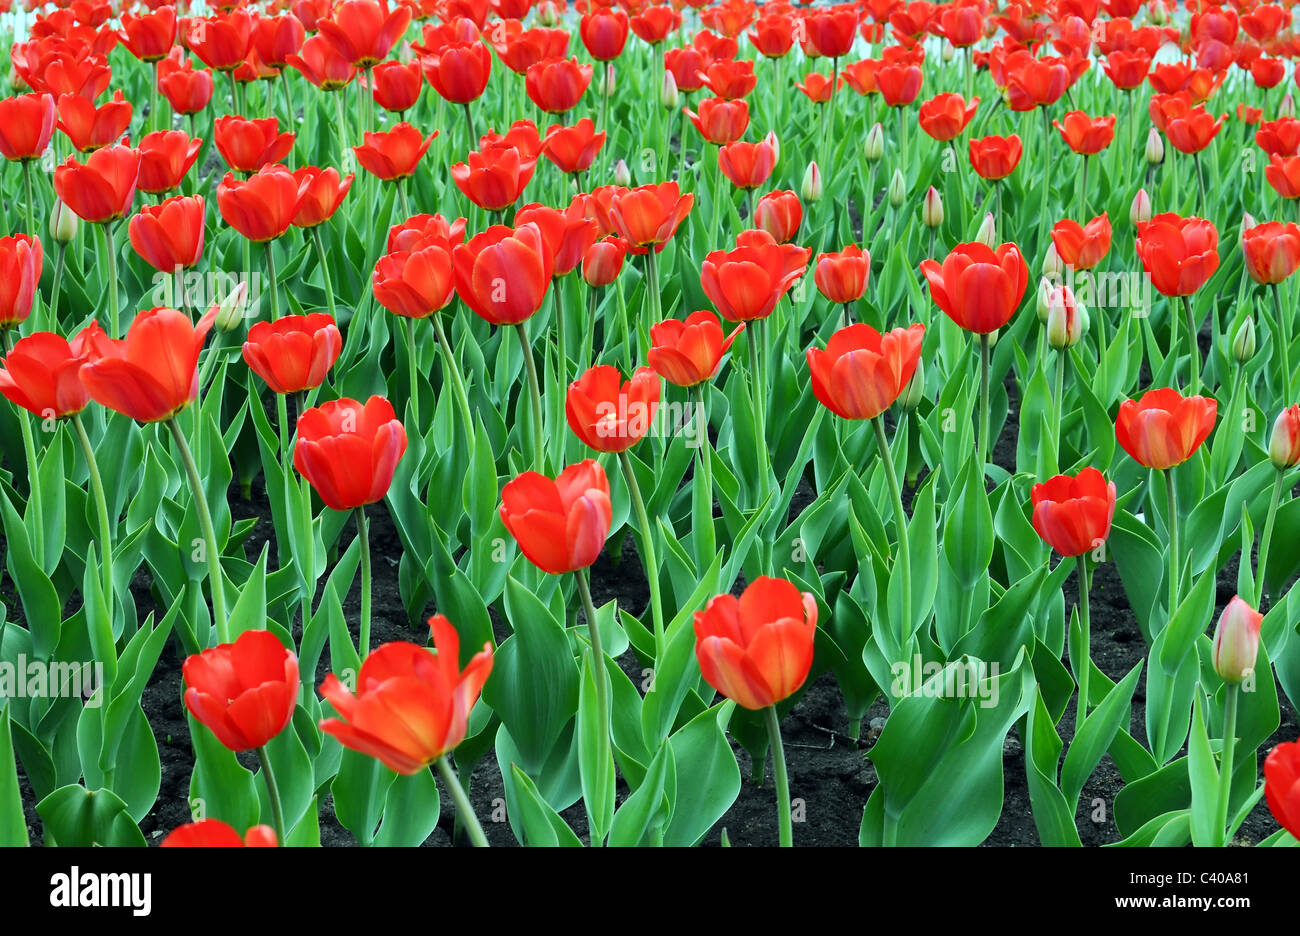 Many Red Tulips on Meadow - Stock Image